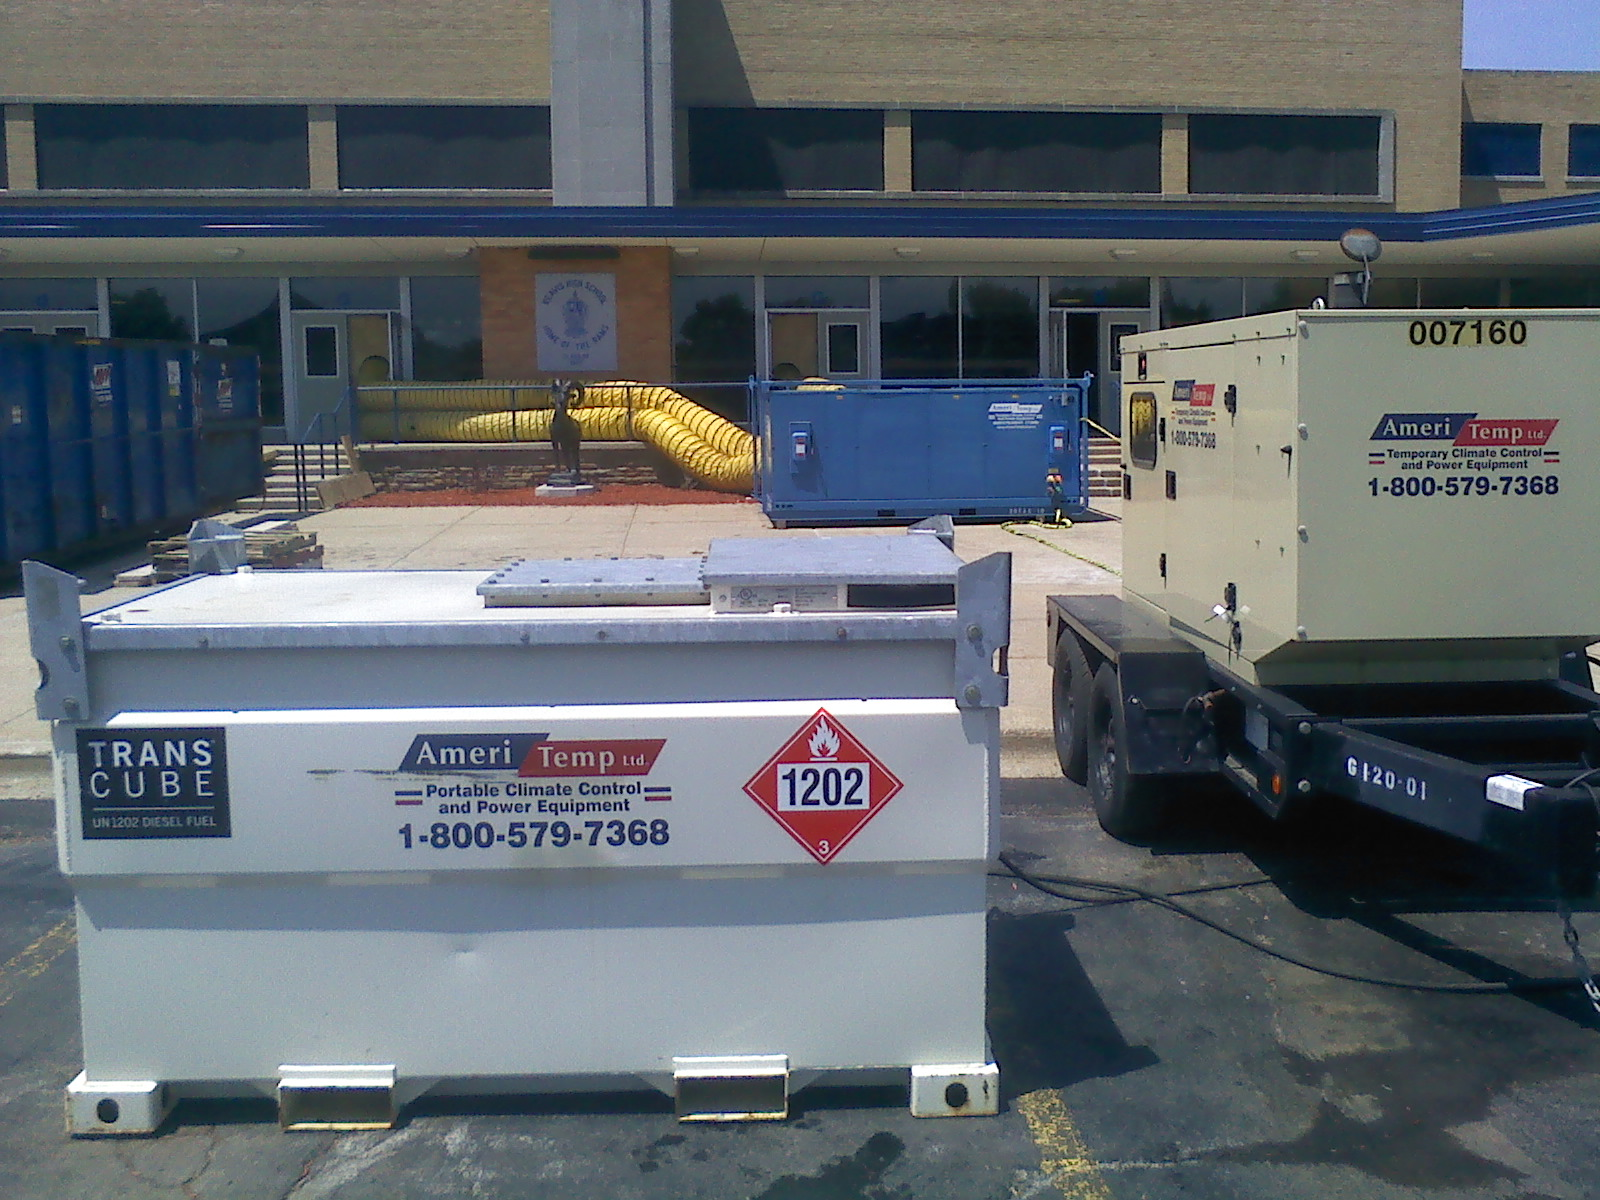 6905598 further Trailer Mounted Air Cooled Chillers besides portableairandpower also Trailer Mounted Air Cooled Chillers as well 500 Ton Trailer Mounted Air Cooled Chiller. on 500 ton trailer mounted air cooled chiller